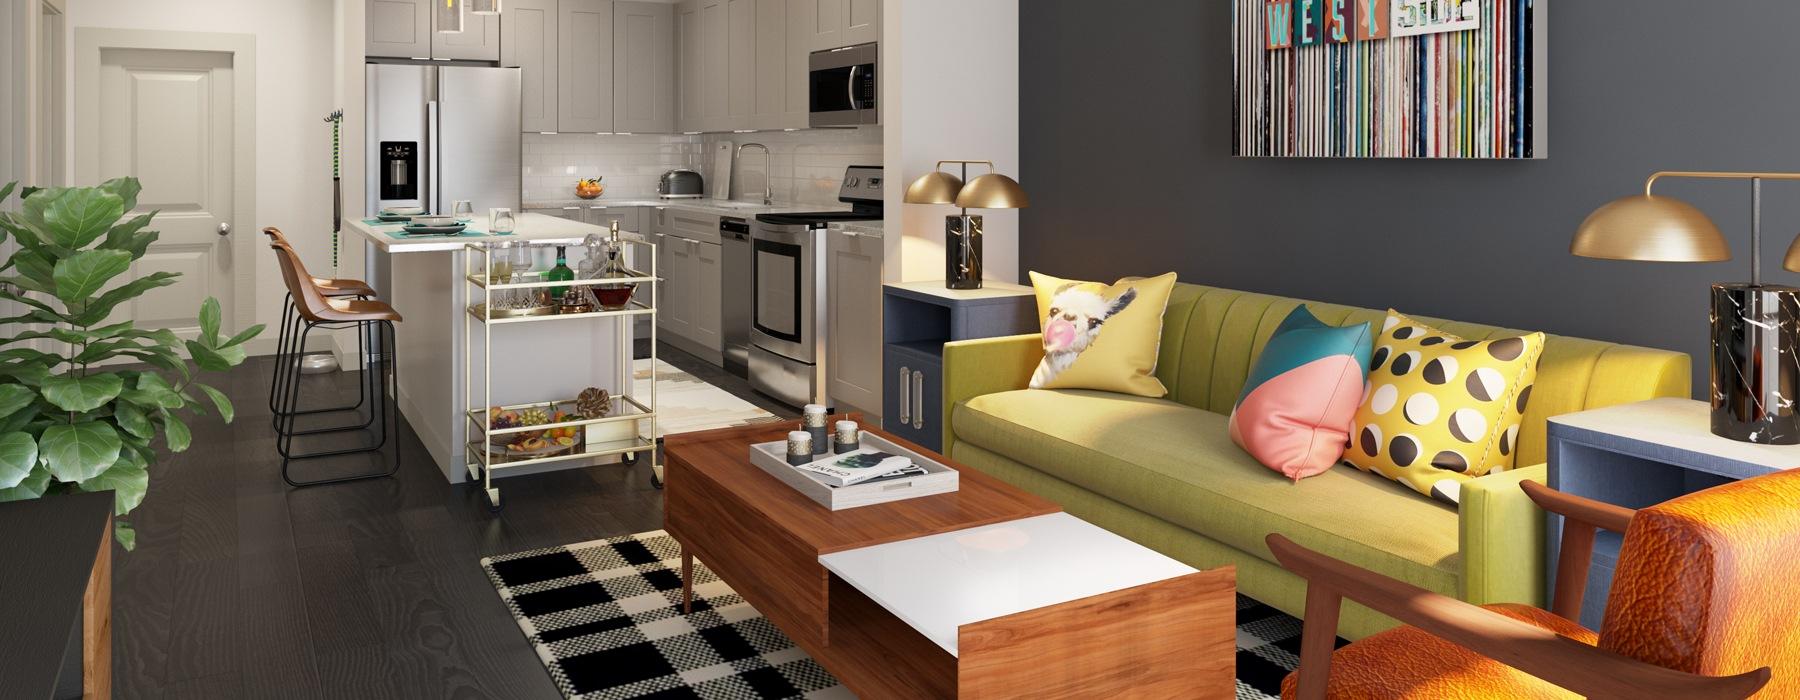 Open living room kitchen combo with dining seating at the kitchen island